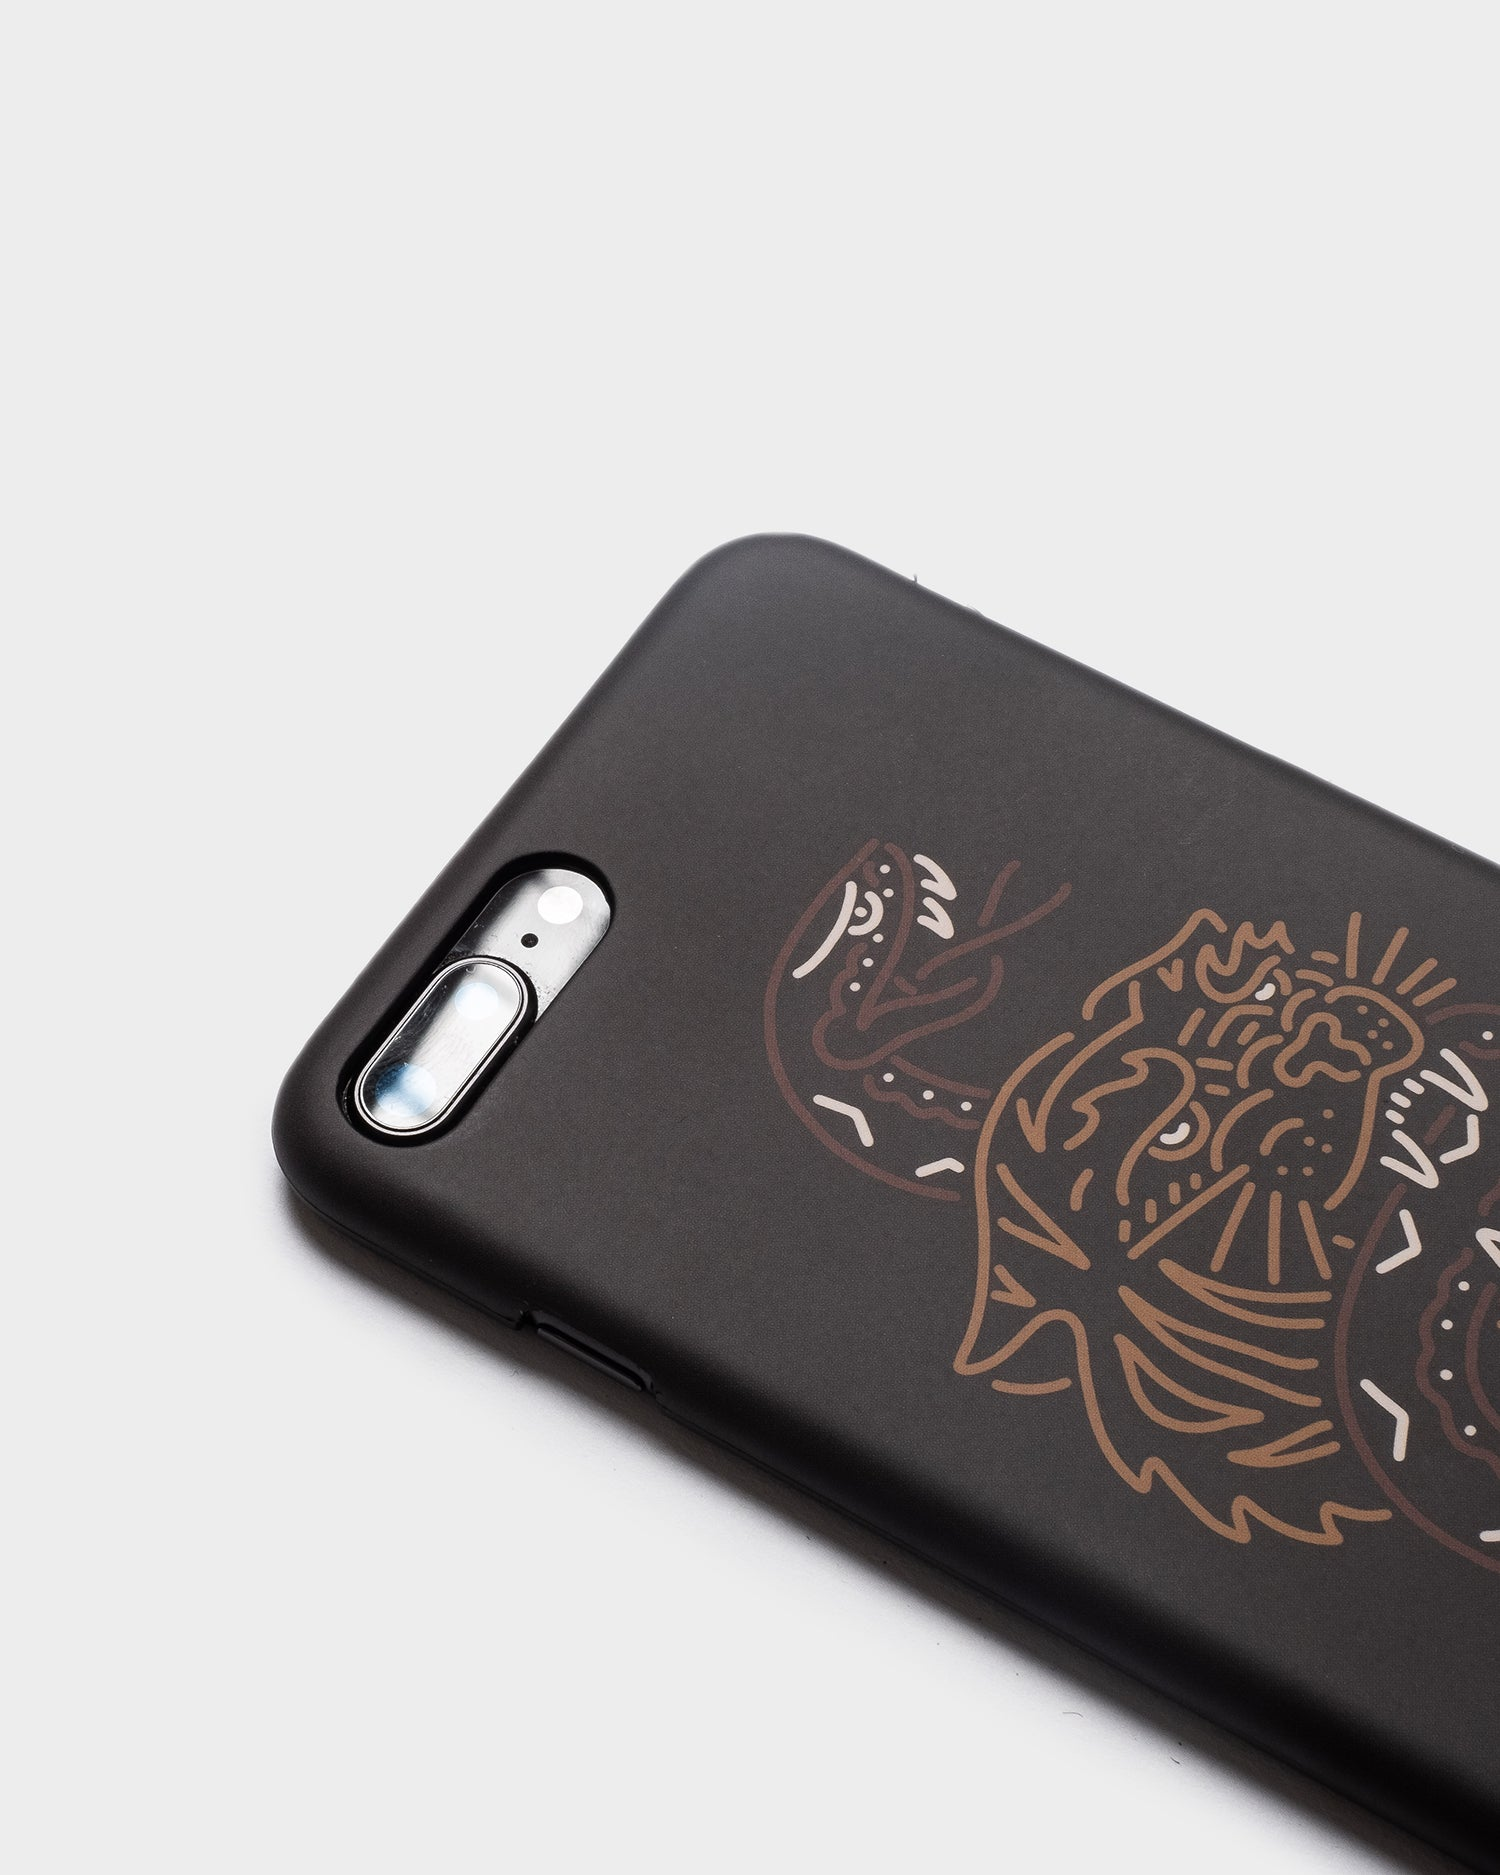 Snakebite Iphone Case